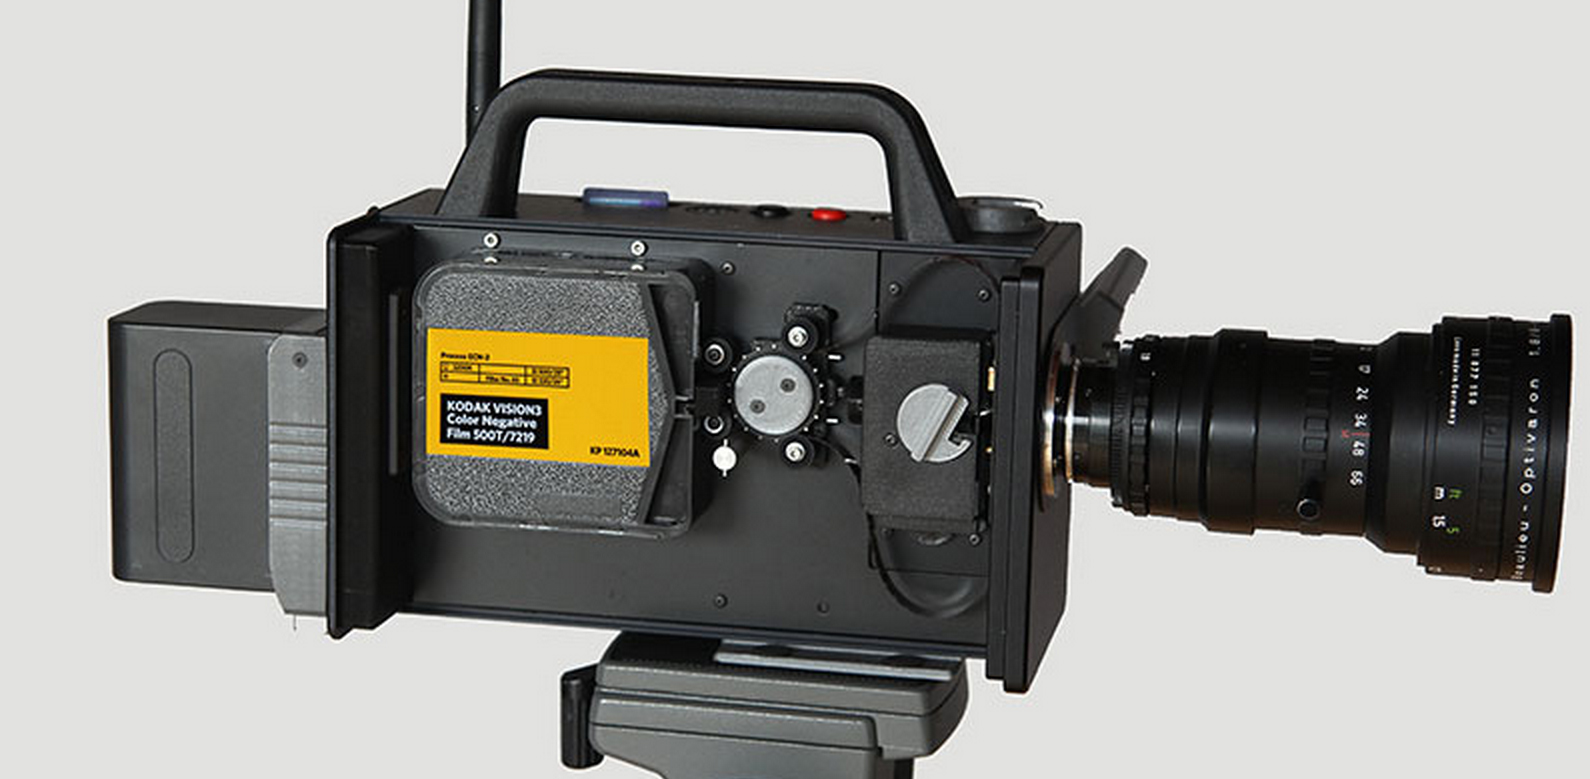 logmar super 8 camera the perfect hybrid for film lovers